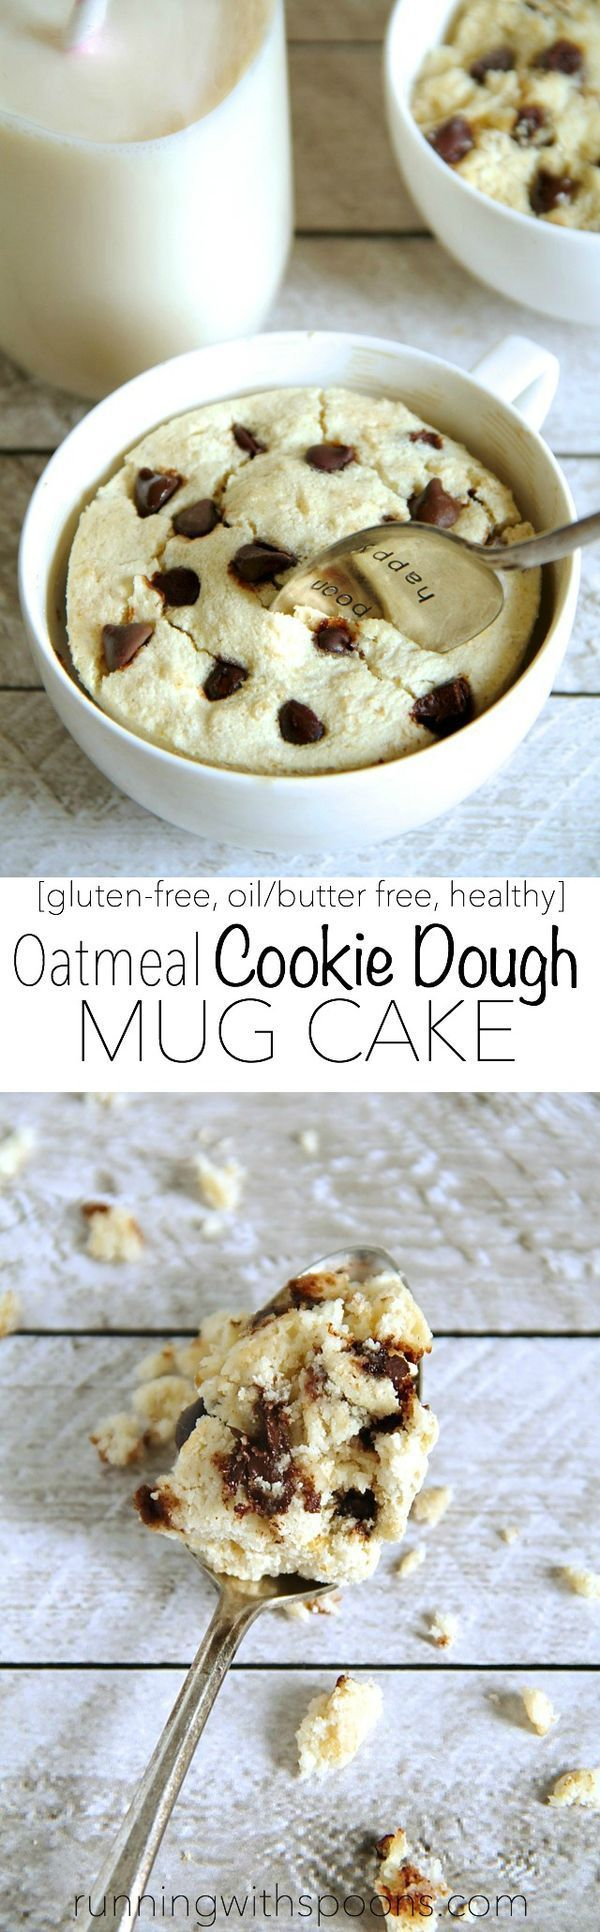 Oatmeal Cookie Dough Mug Cake -- satisfy your cravings in less than 5 minutes with this delicious gluten-free mug cake! Single-serve and made with healthy ingredients, it makes the PERFECT snack! || runningwithspoons.com